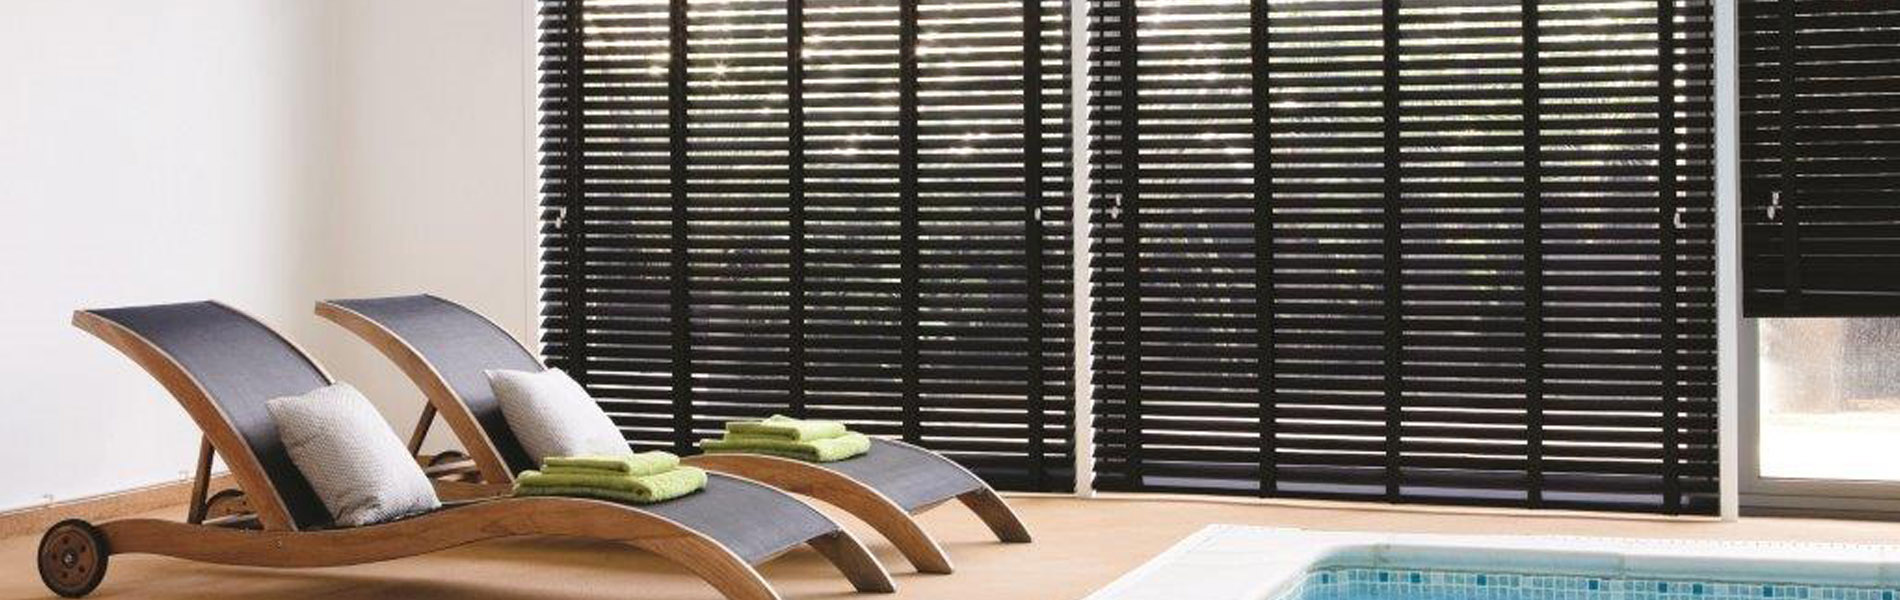 shutters draperies diego wood blinds san custom shuttersexpress expressblindsproducts express